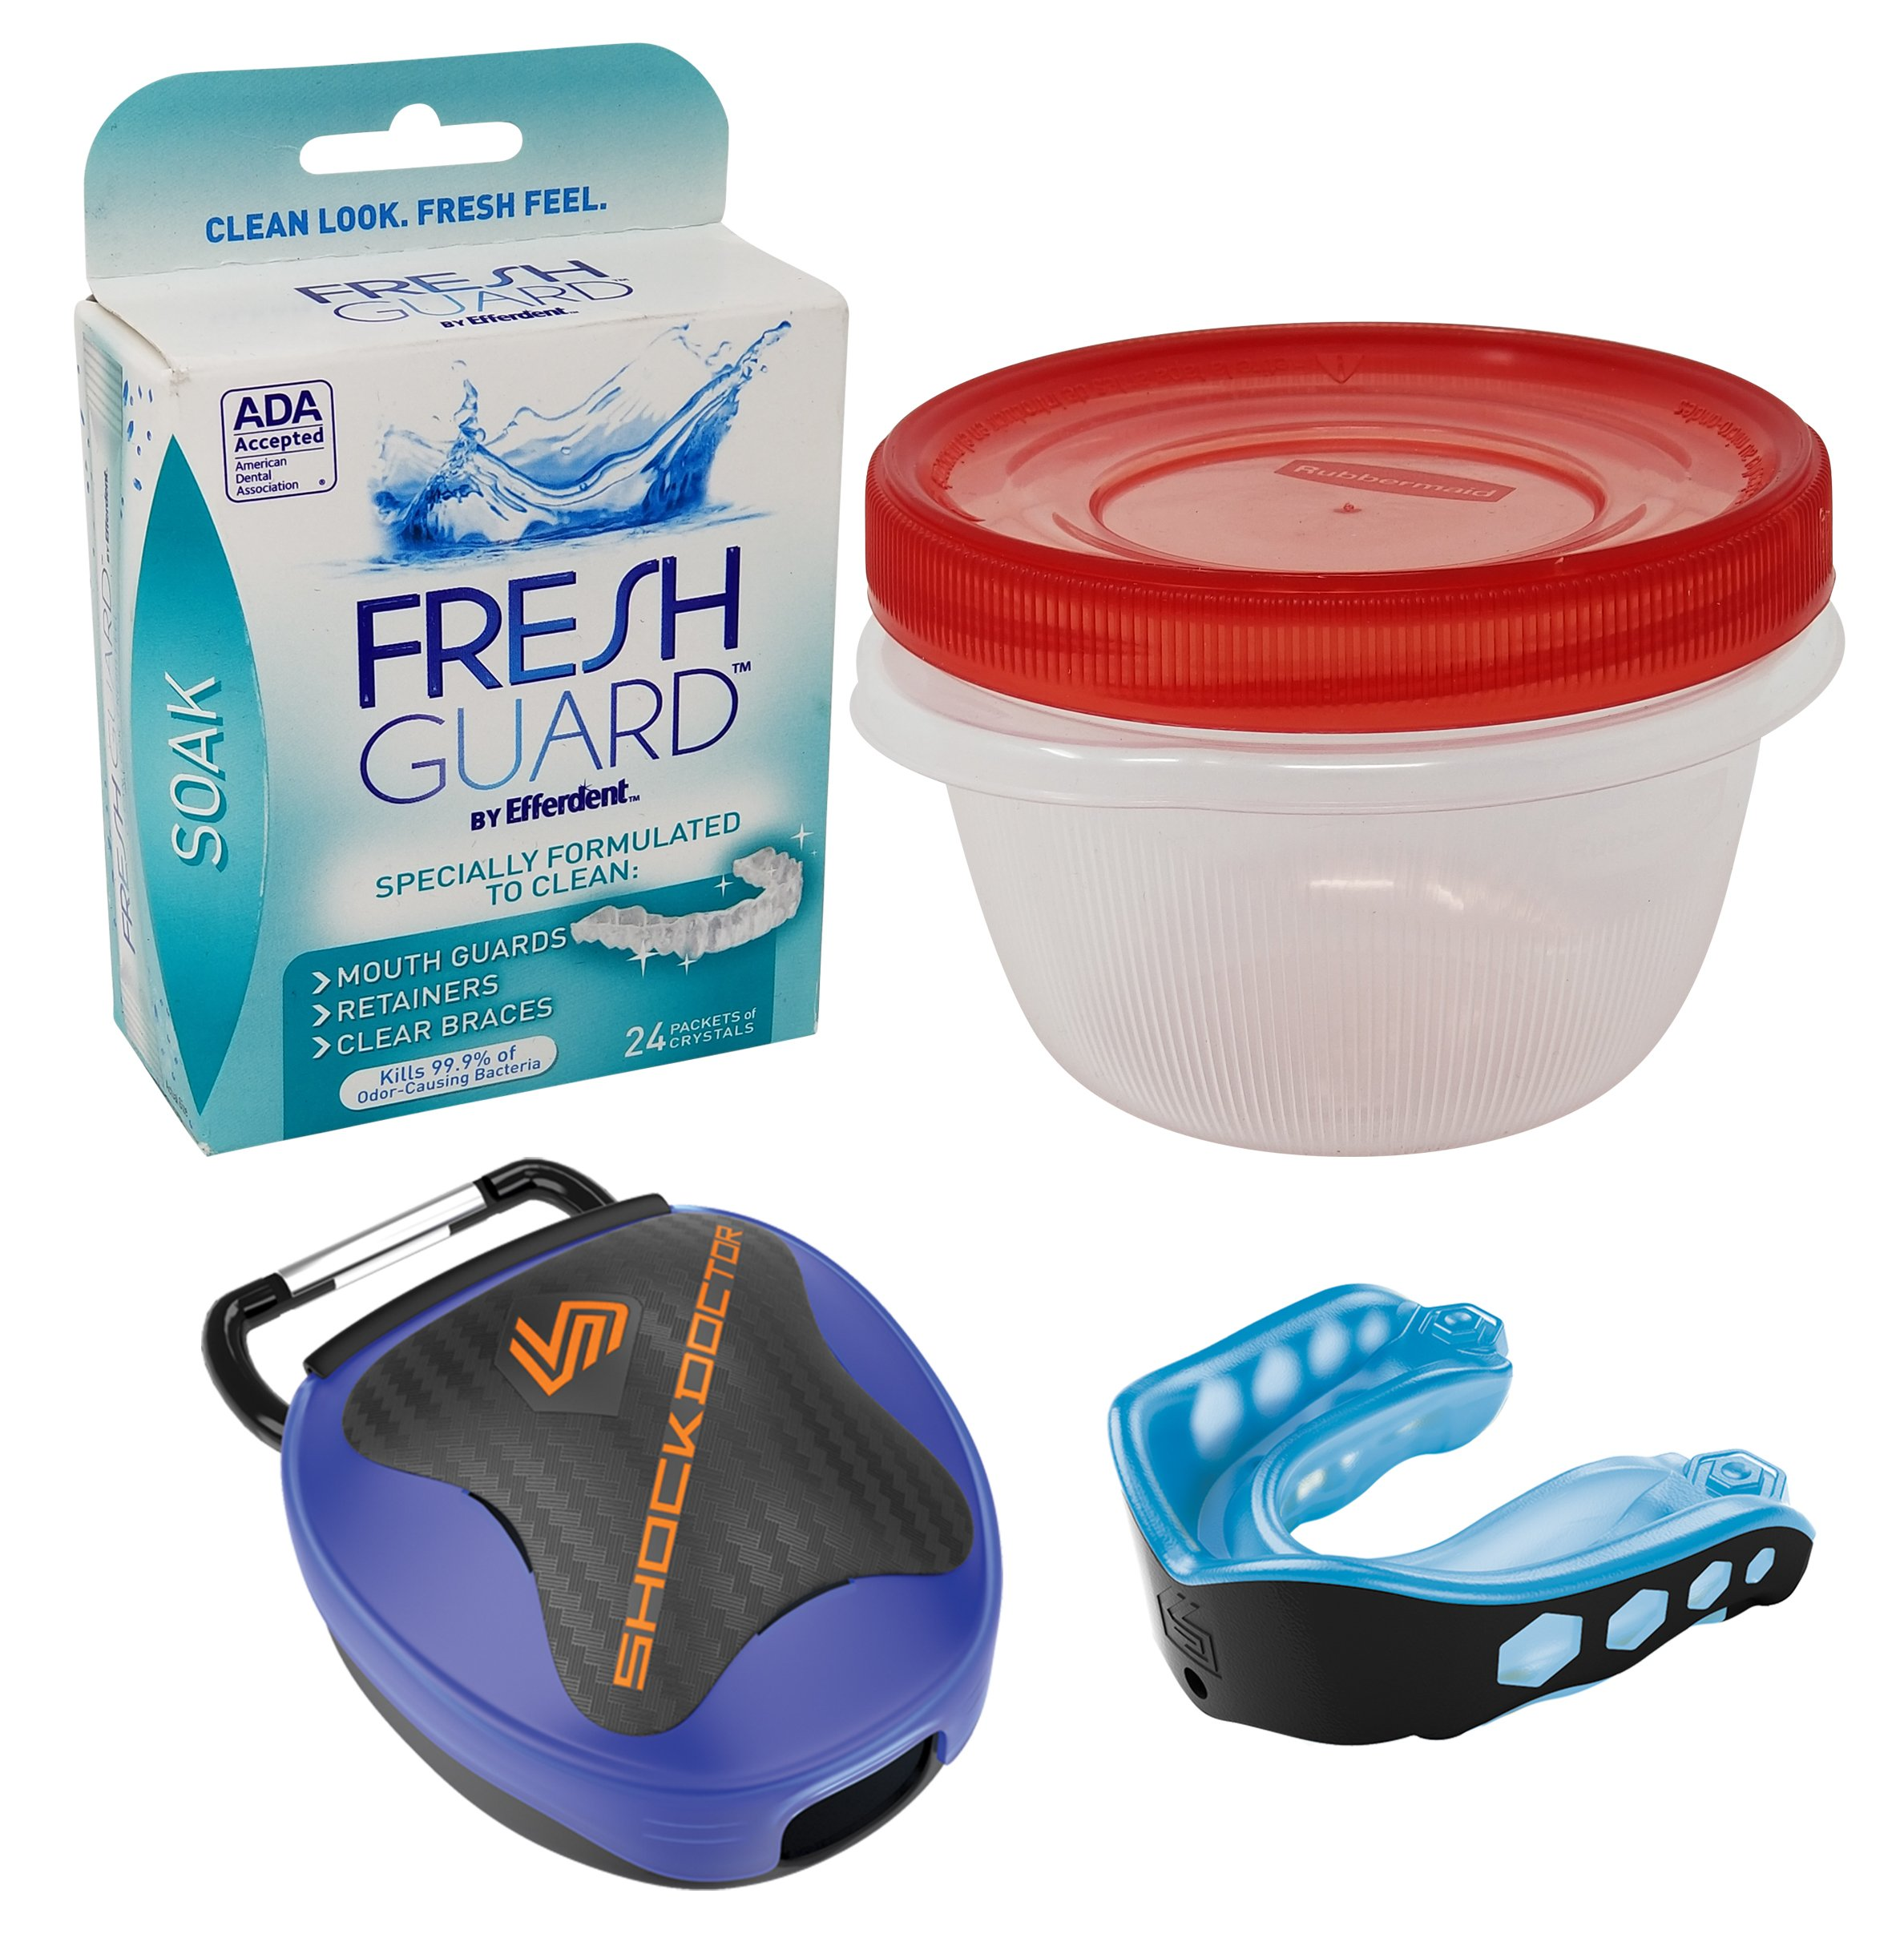 Mouth Guard Retainer Cleaner Bundle with Case - 1 Shock Doctor Gel Max Mouth Guard, 1 Case, Efferdent Cleaning Crystals, Rubbermaid Cleaning Storage Container (Blue, Youth) by Sport and Hound (Image #1)